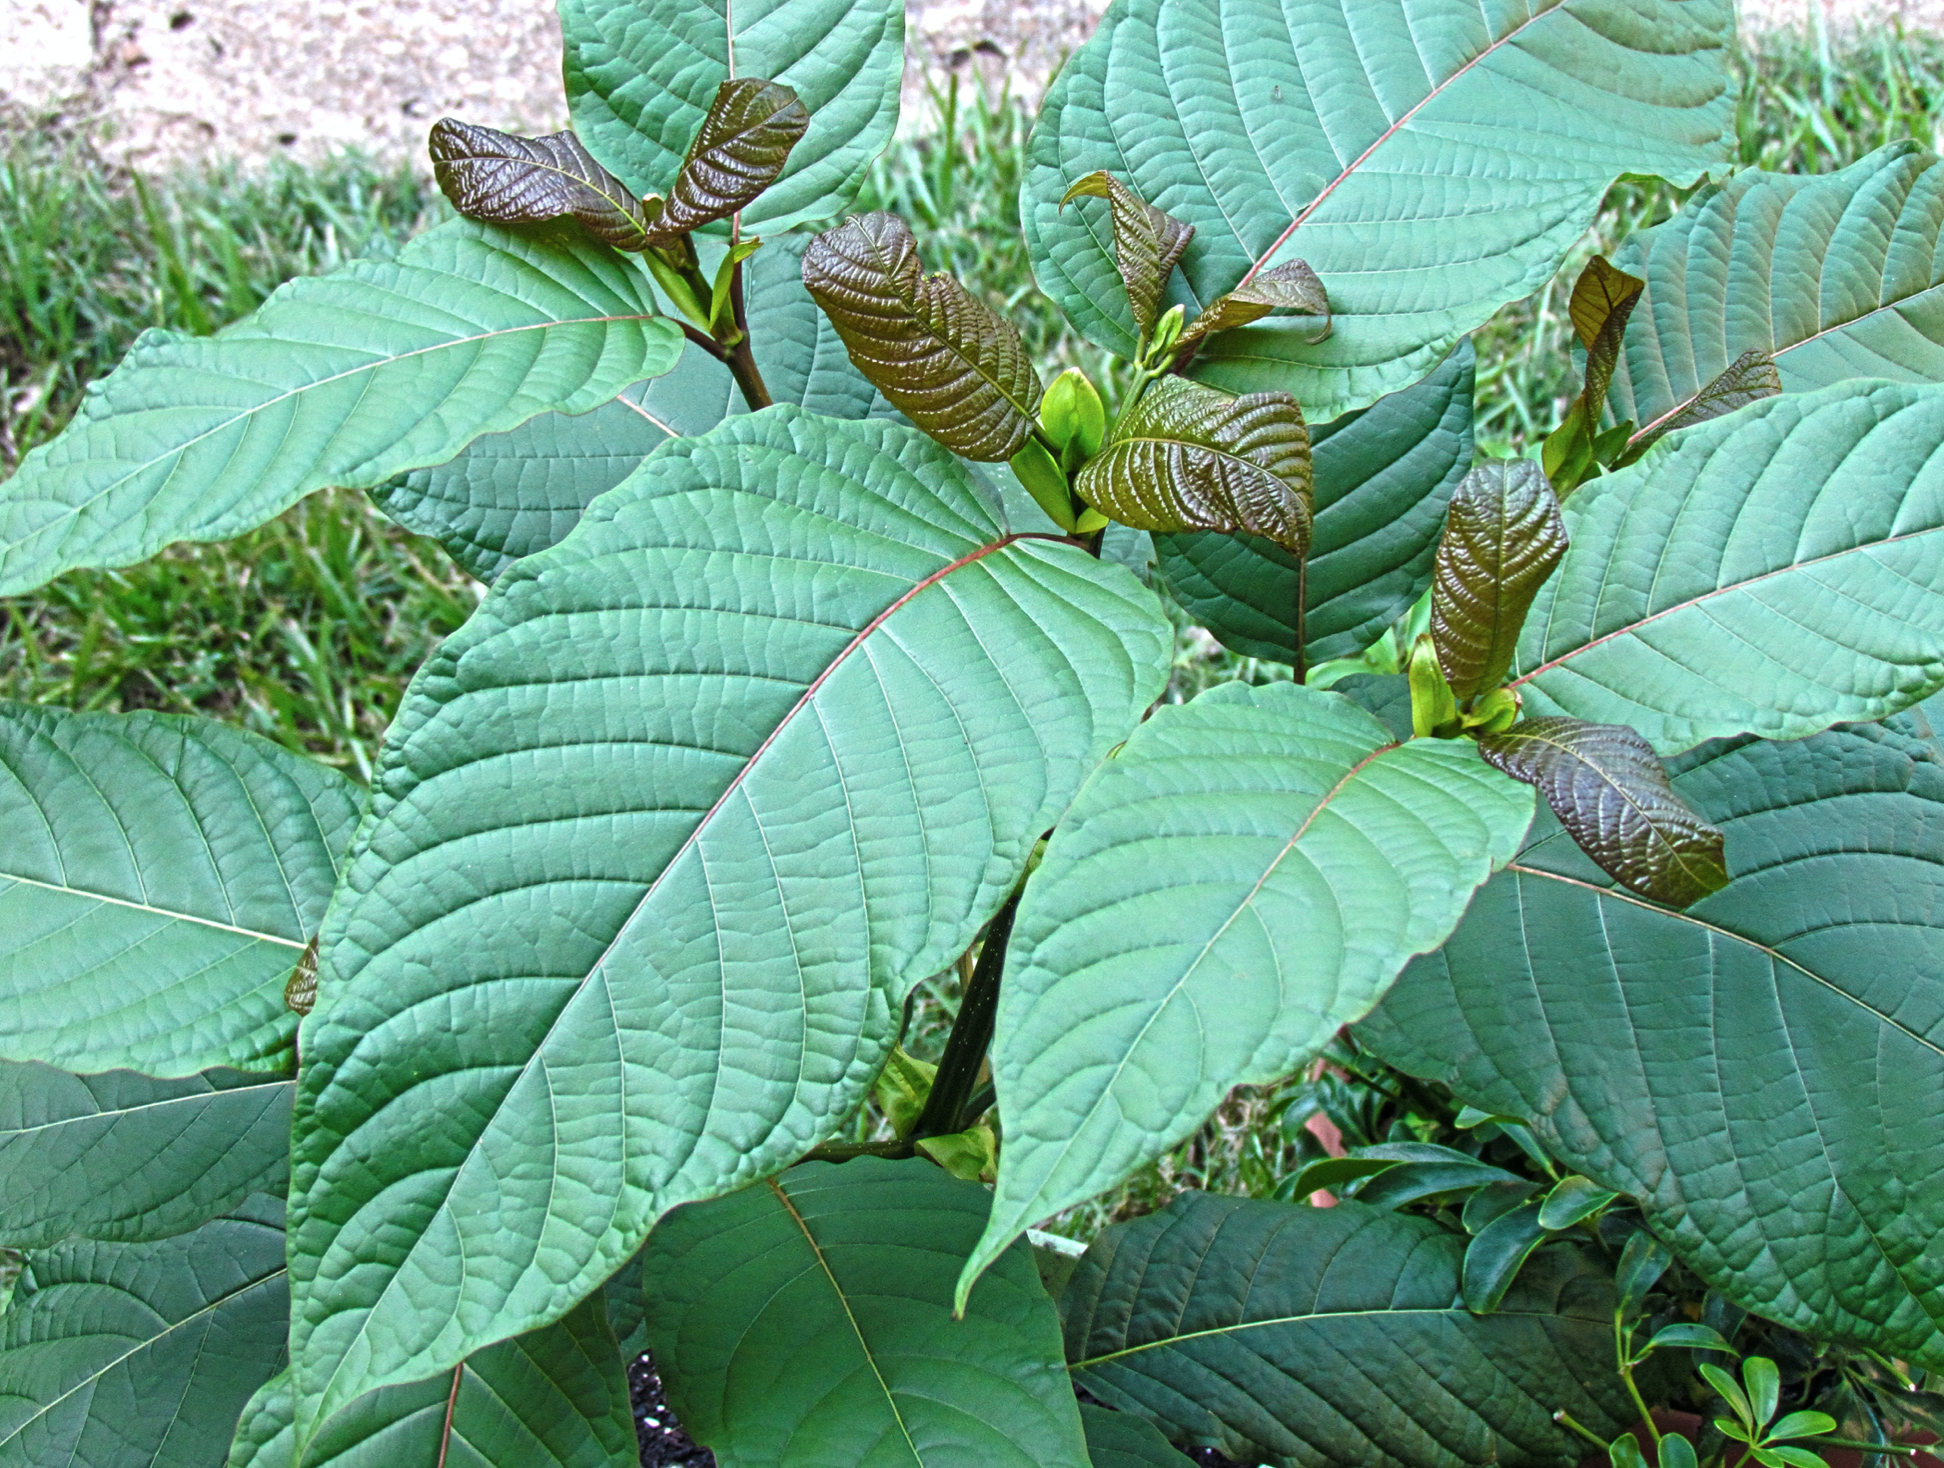 Kratom plant; image by ThorPorre, via Wikimedia Commons, CC BY 3.0, no changes.